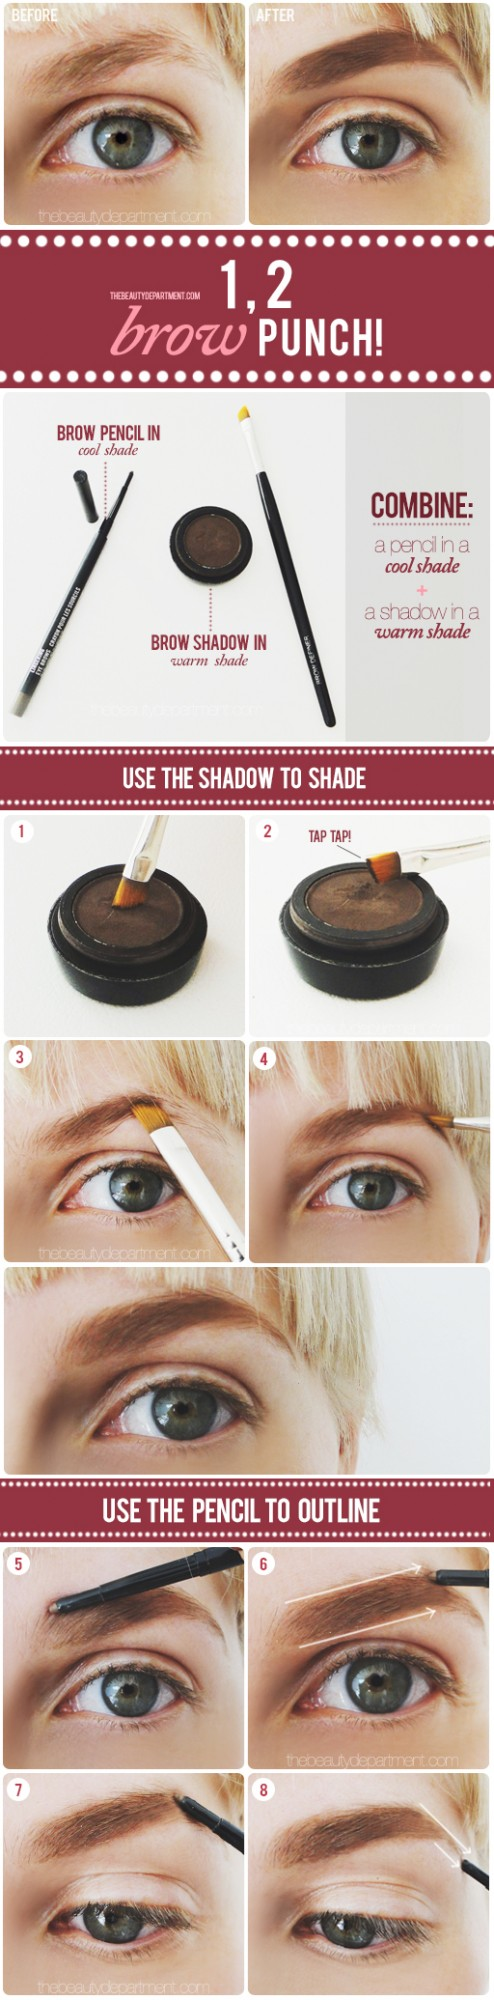 Useful Makeup Tutorials for Sophisticated Looks: Brown Punch